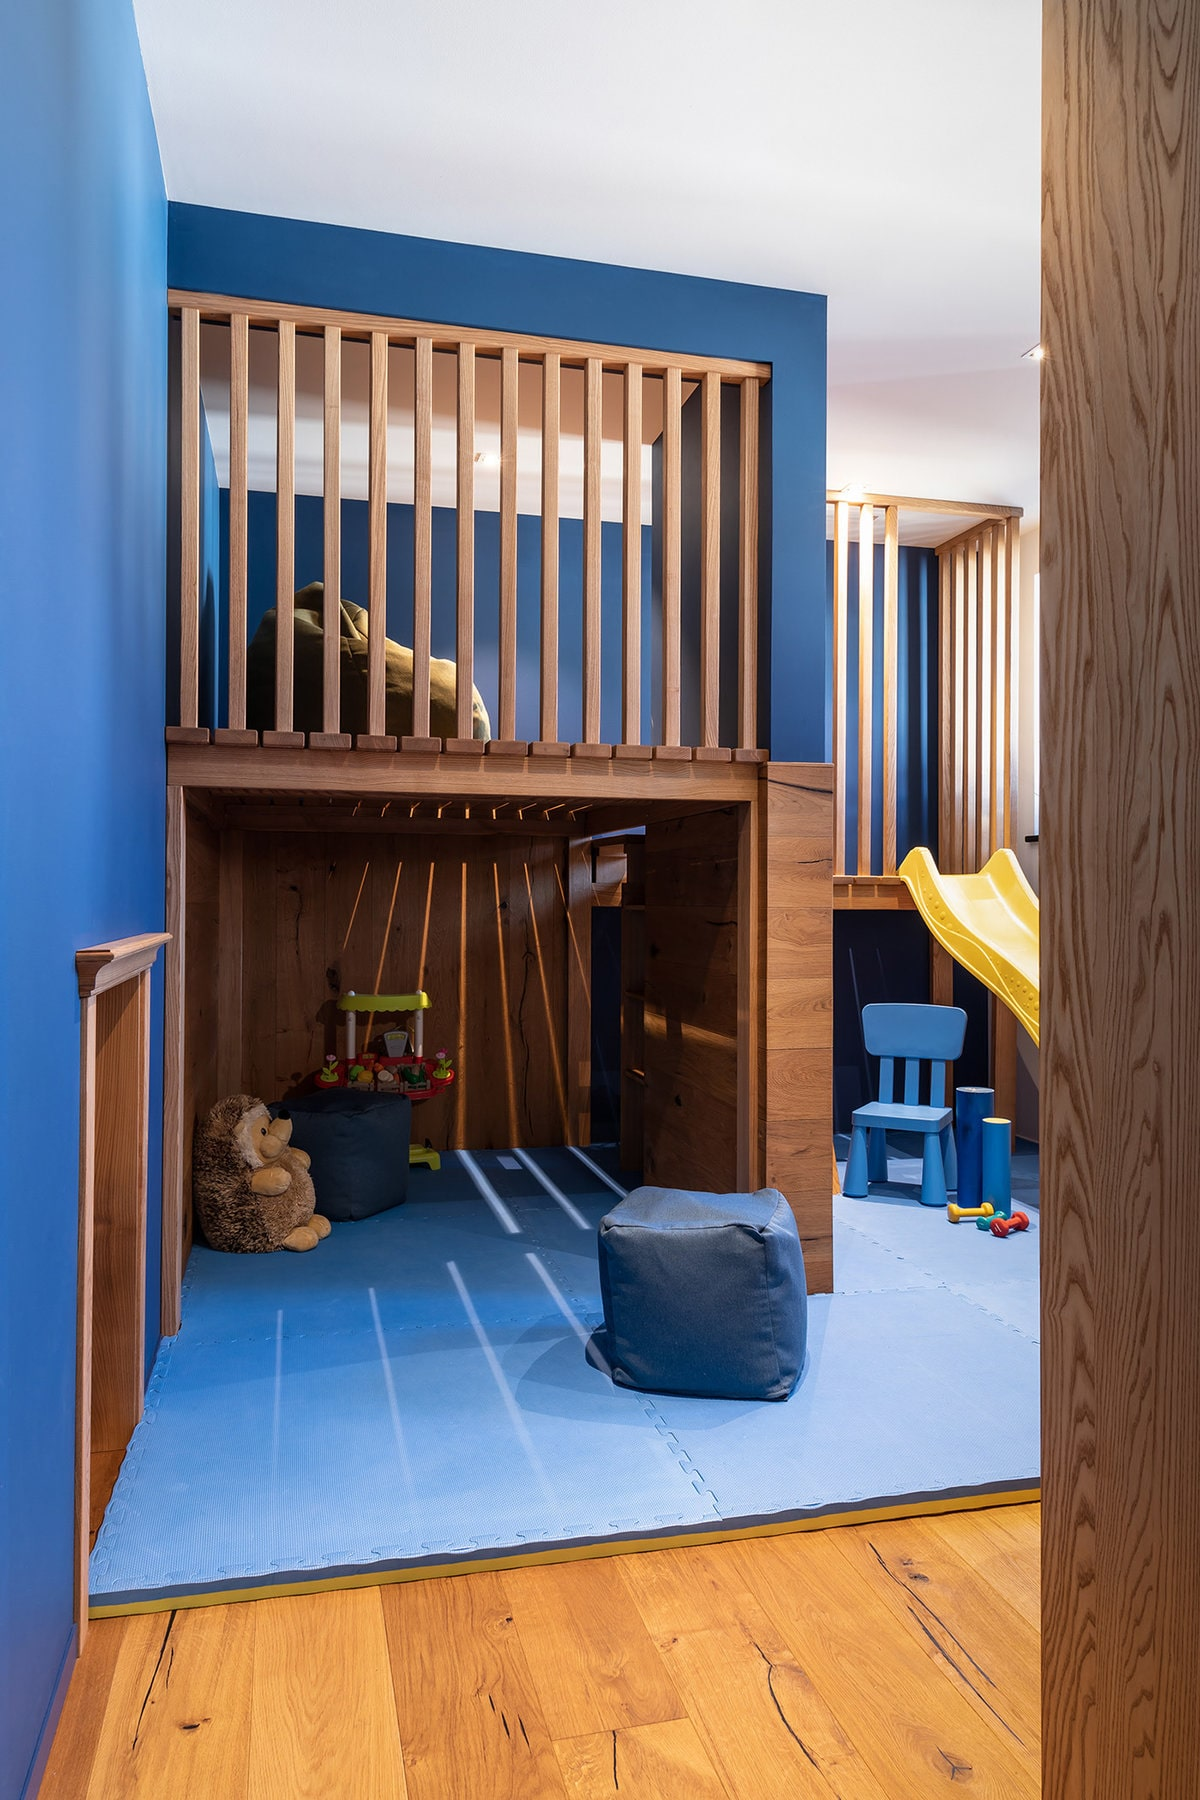 This is a charming playroom with a built-in playground made of wood contrasted by the brilliant blue walls.